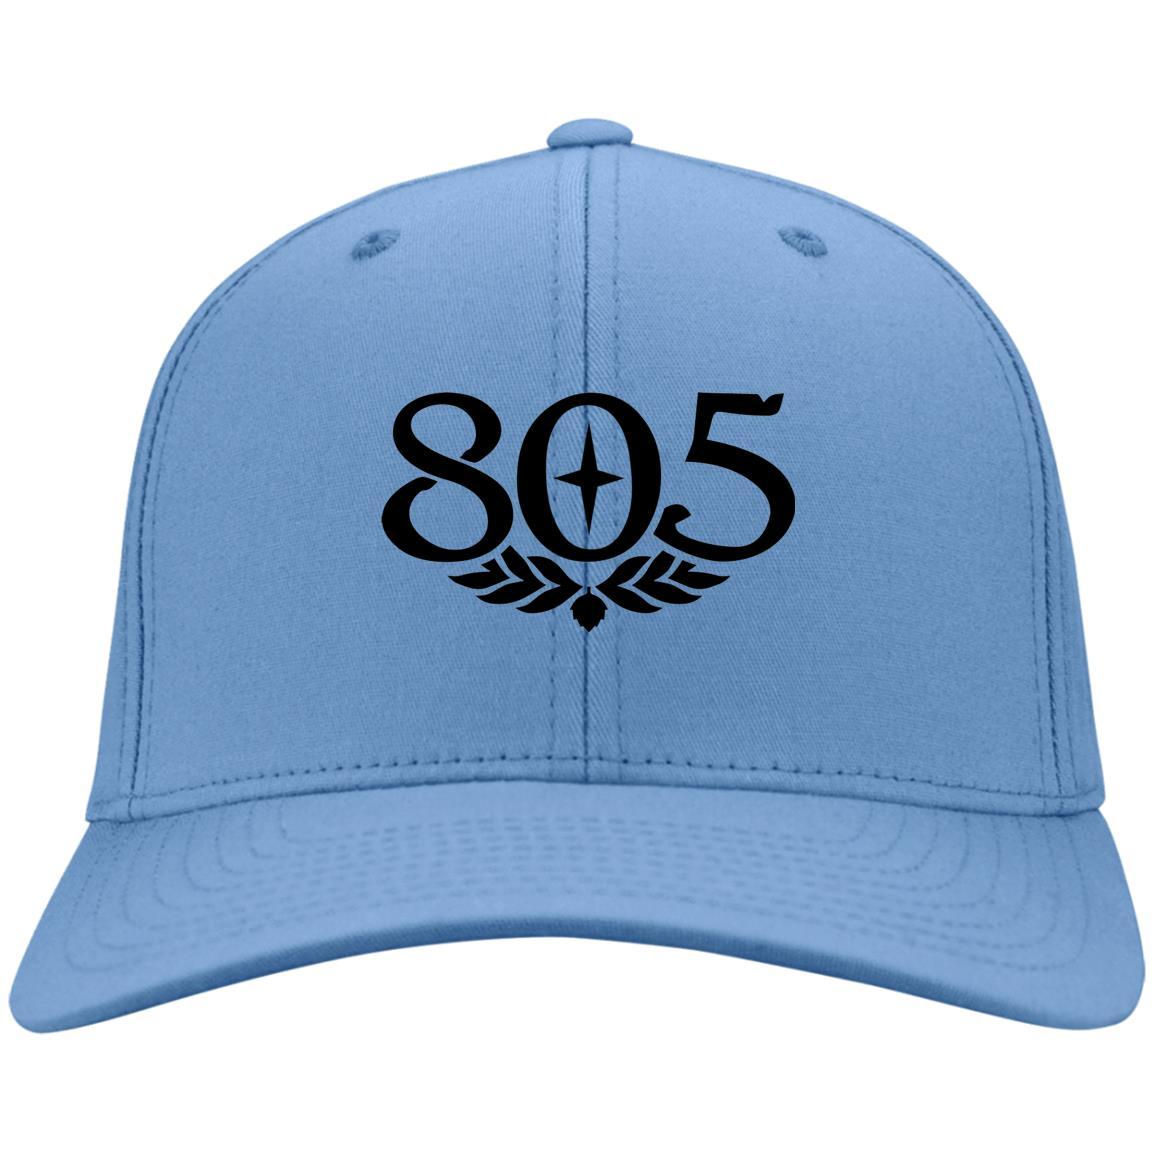 805 Beer Black - Port & Co. Twill Cap Carolina Blue